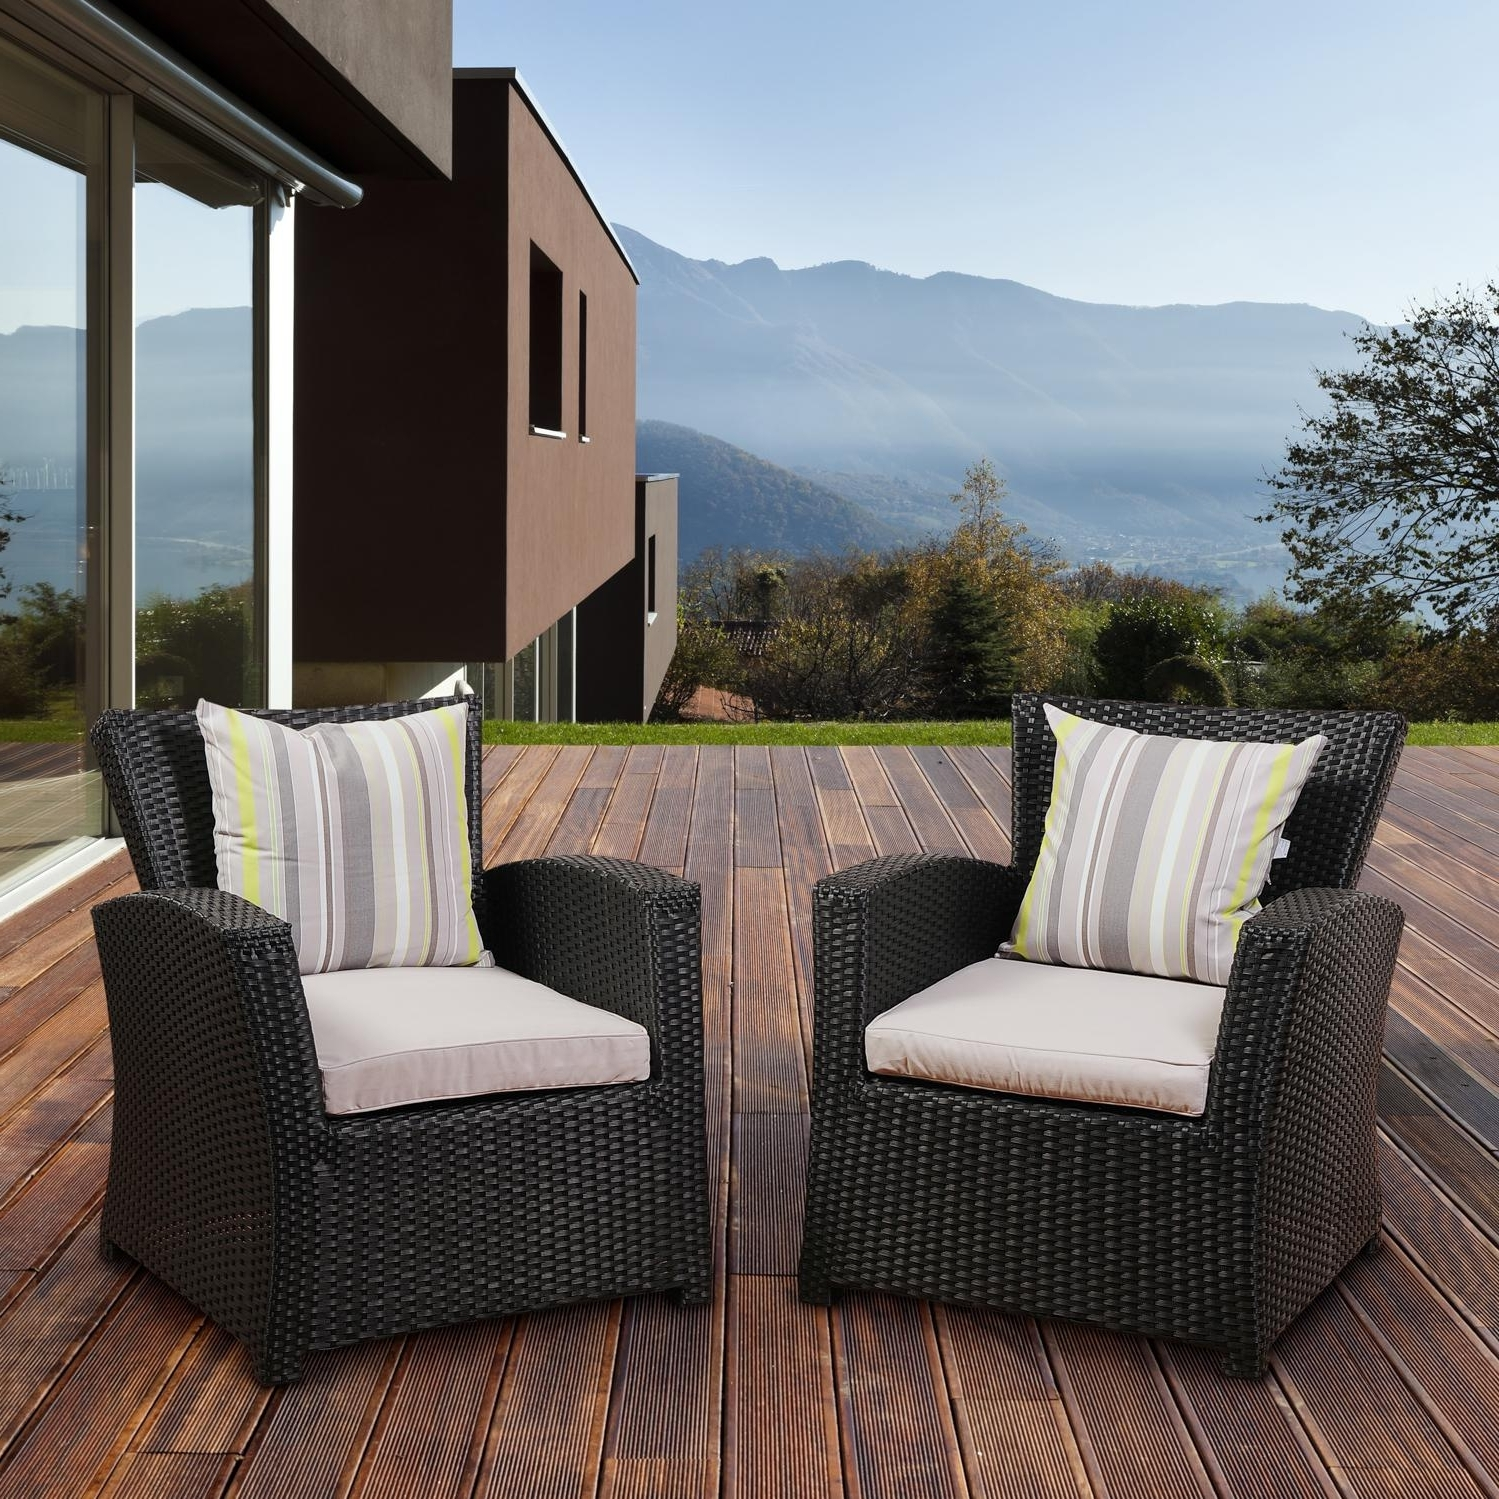 Widely Used Atlantic Staffordshire 4 Person Resin Wicker Patio Conversation Set With Black Patio Conversation Sets (View 10 of 15)